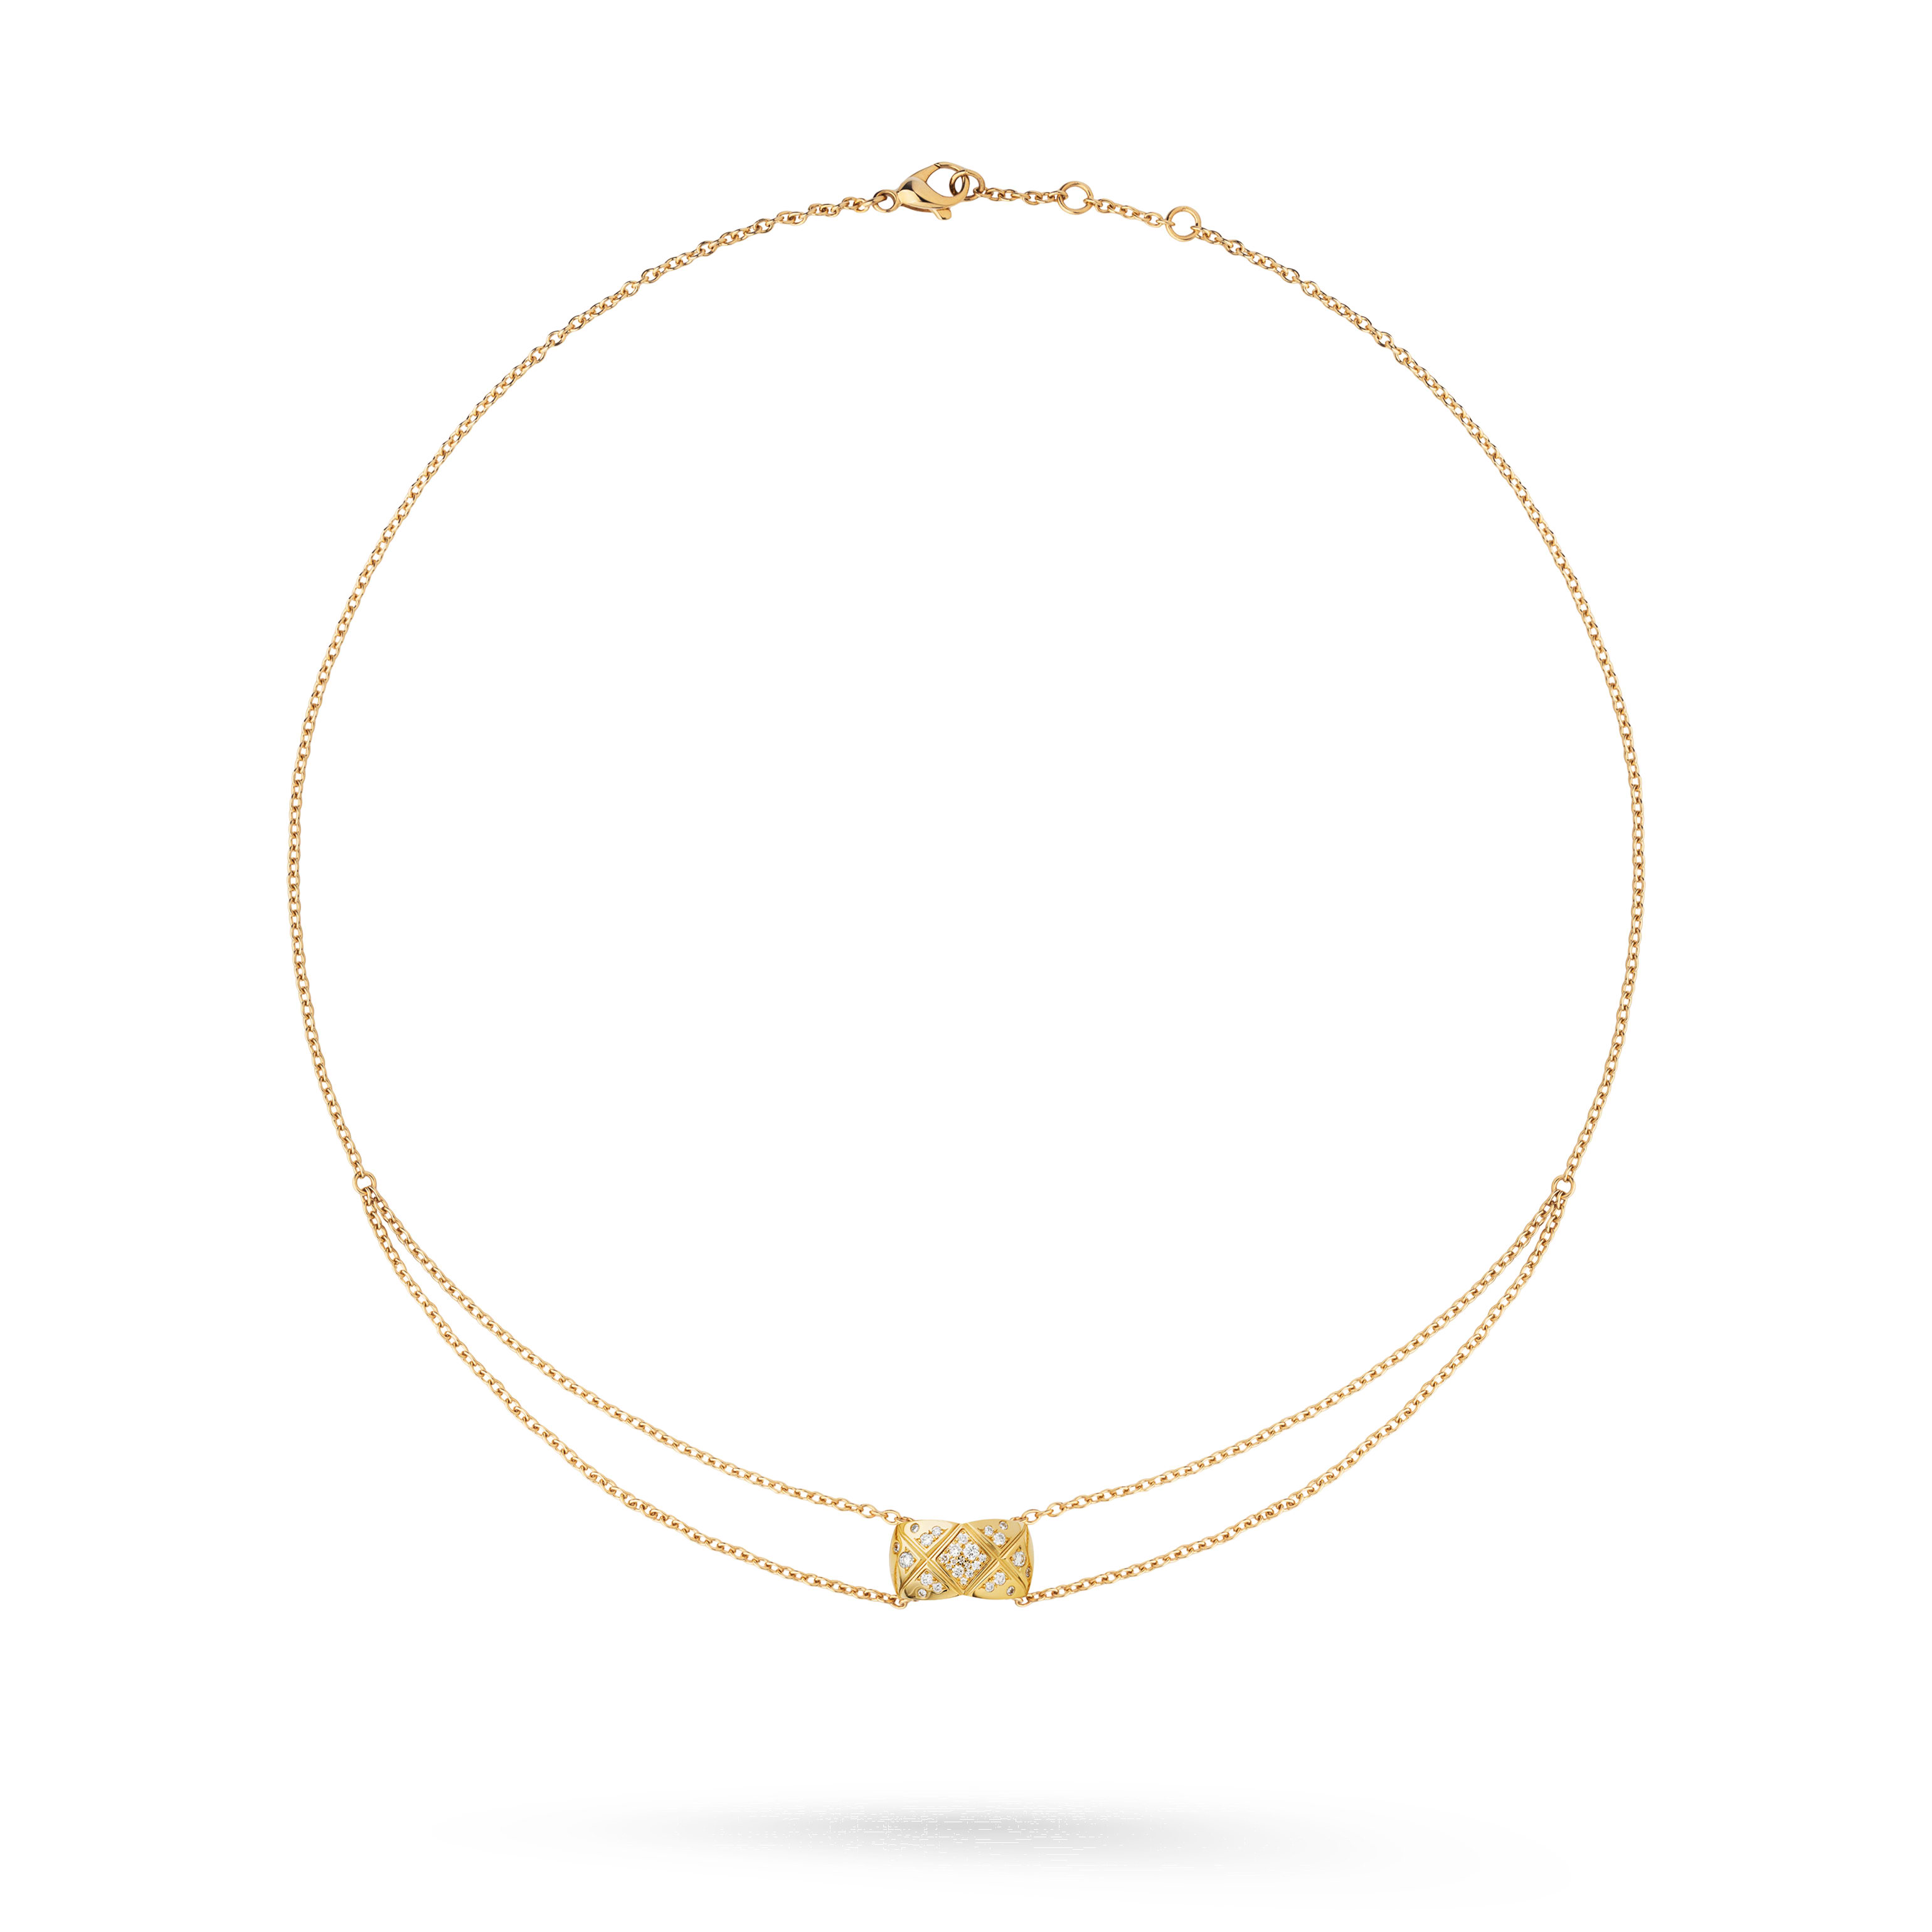 Coco Crush necklace - Quilted motif, 18K yellow gold, diamonds - CHANEL - Default view - see standard sized version